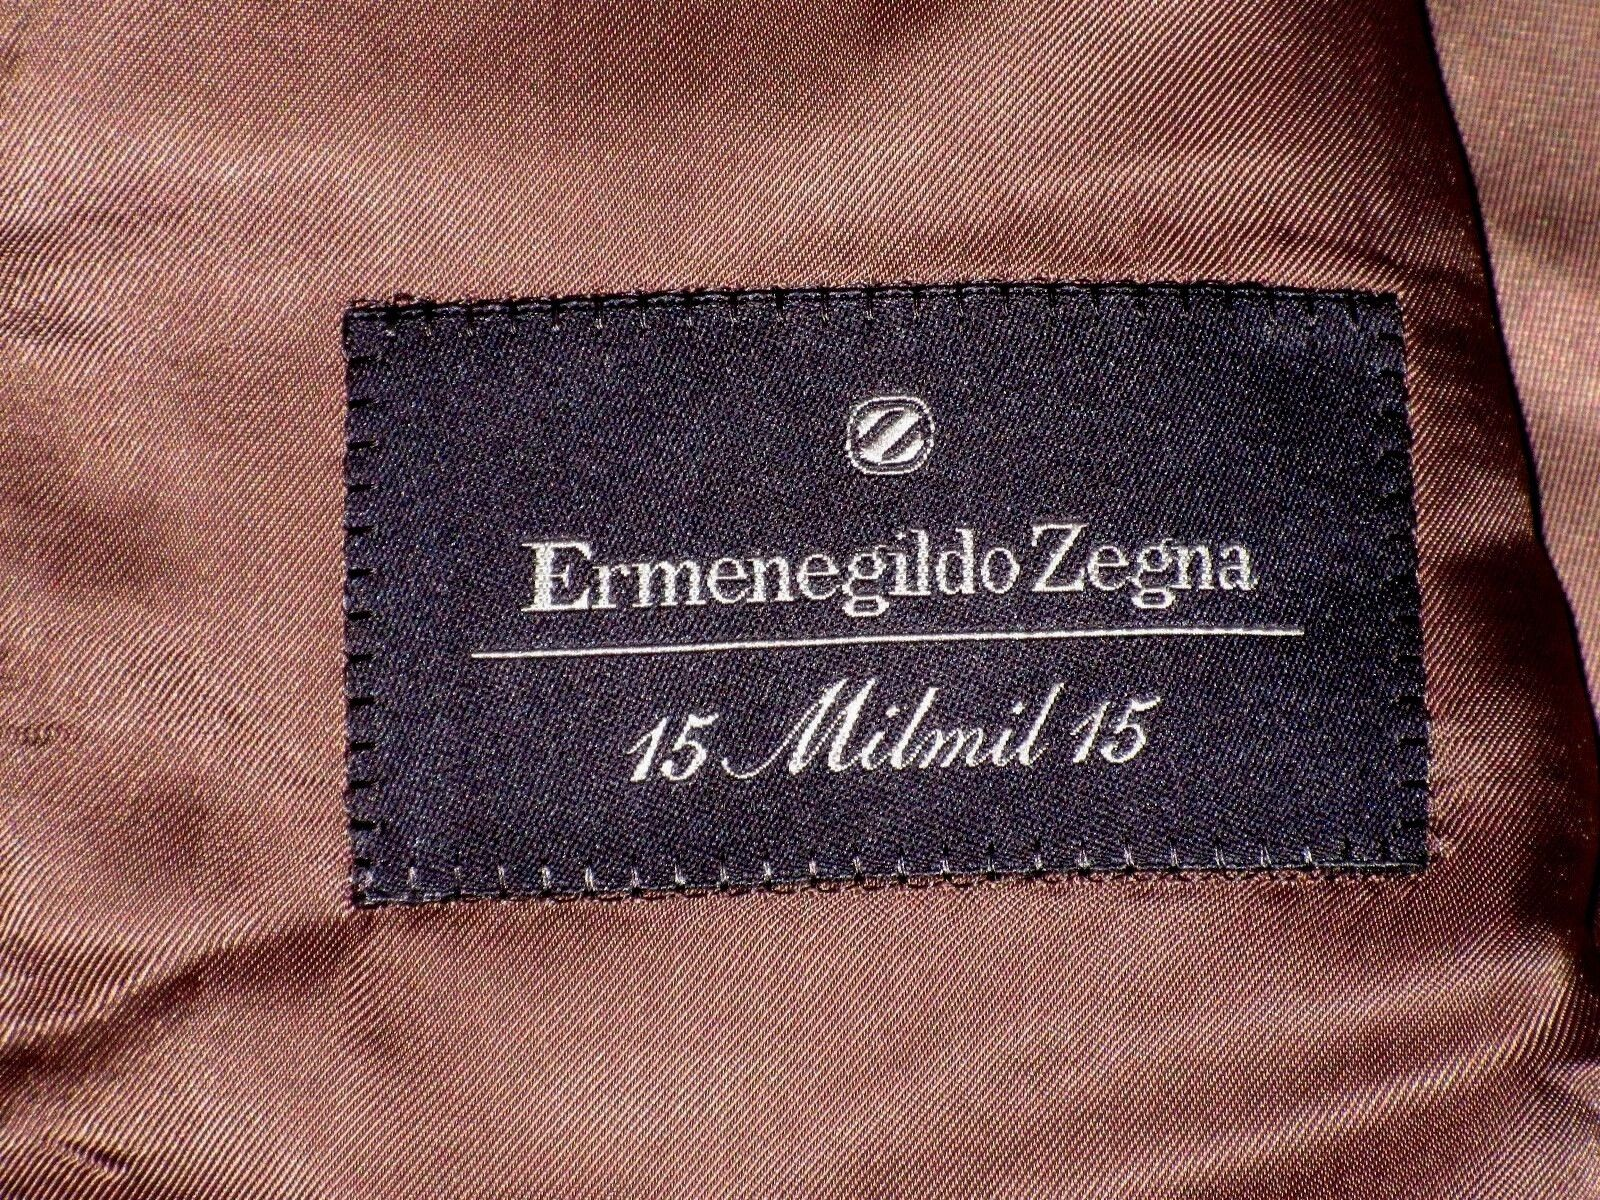 Ermenegildo Zegna 15 MILMIL 15 Wool Beige 3 Button Luxury Blazer Sport Coat 42L